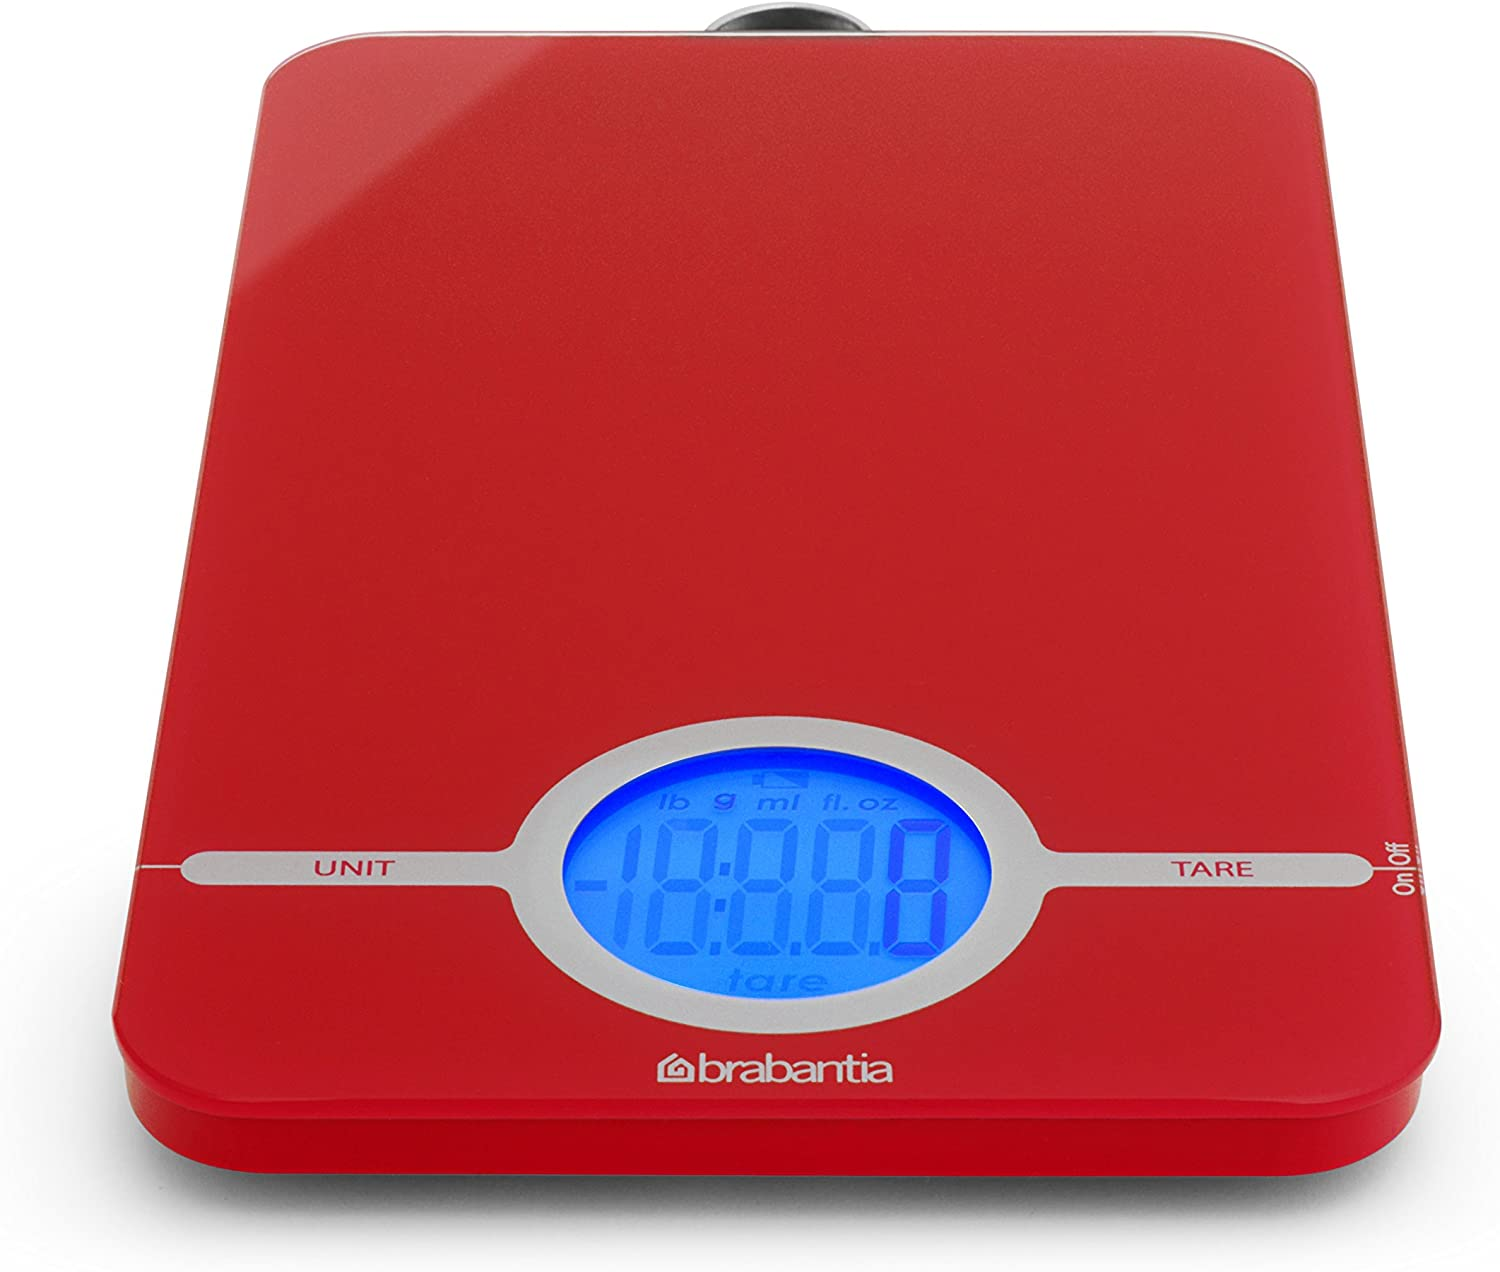 Brabantia Digital Kitchen Scales - Red